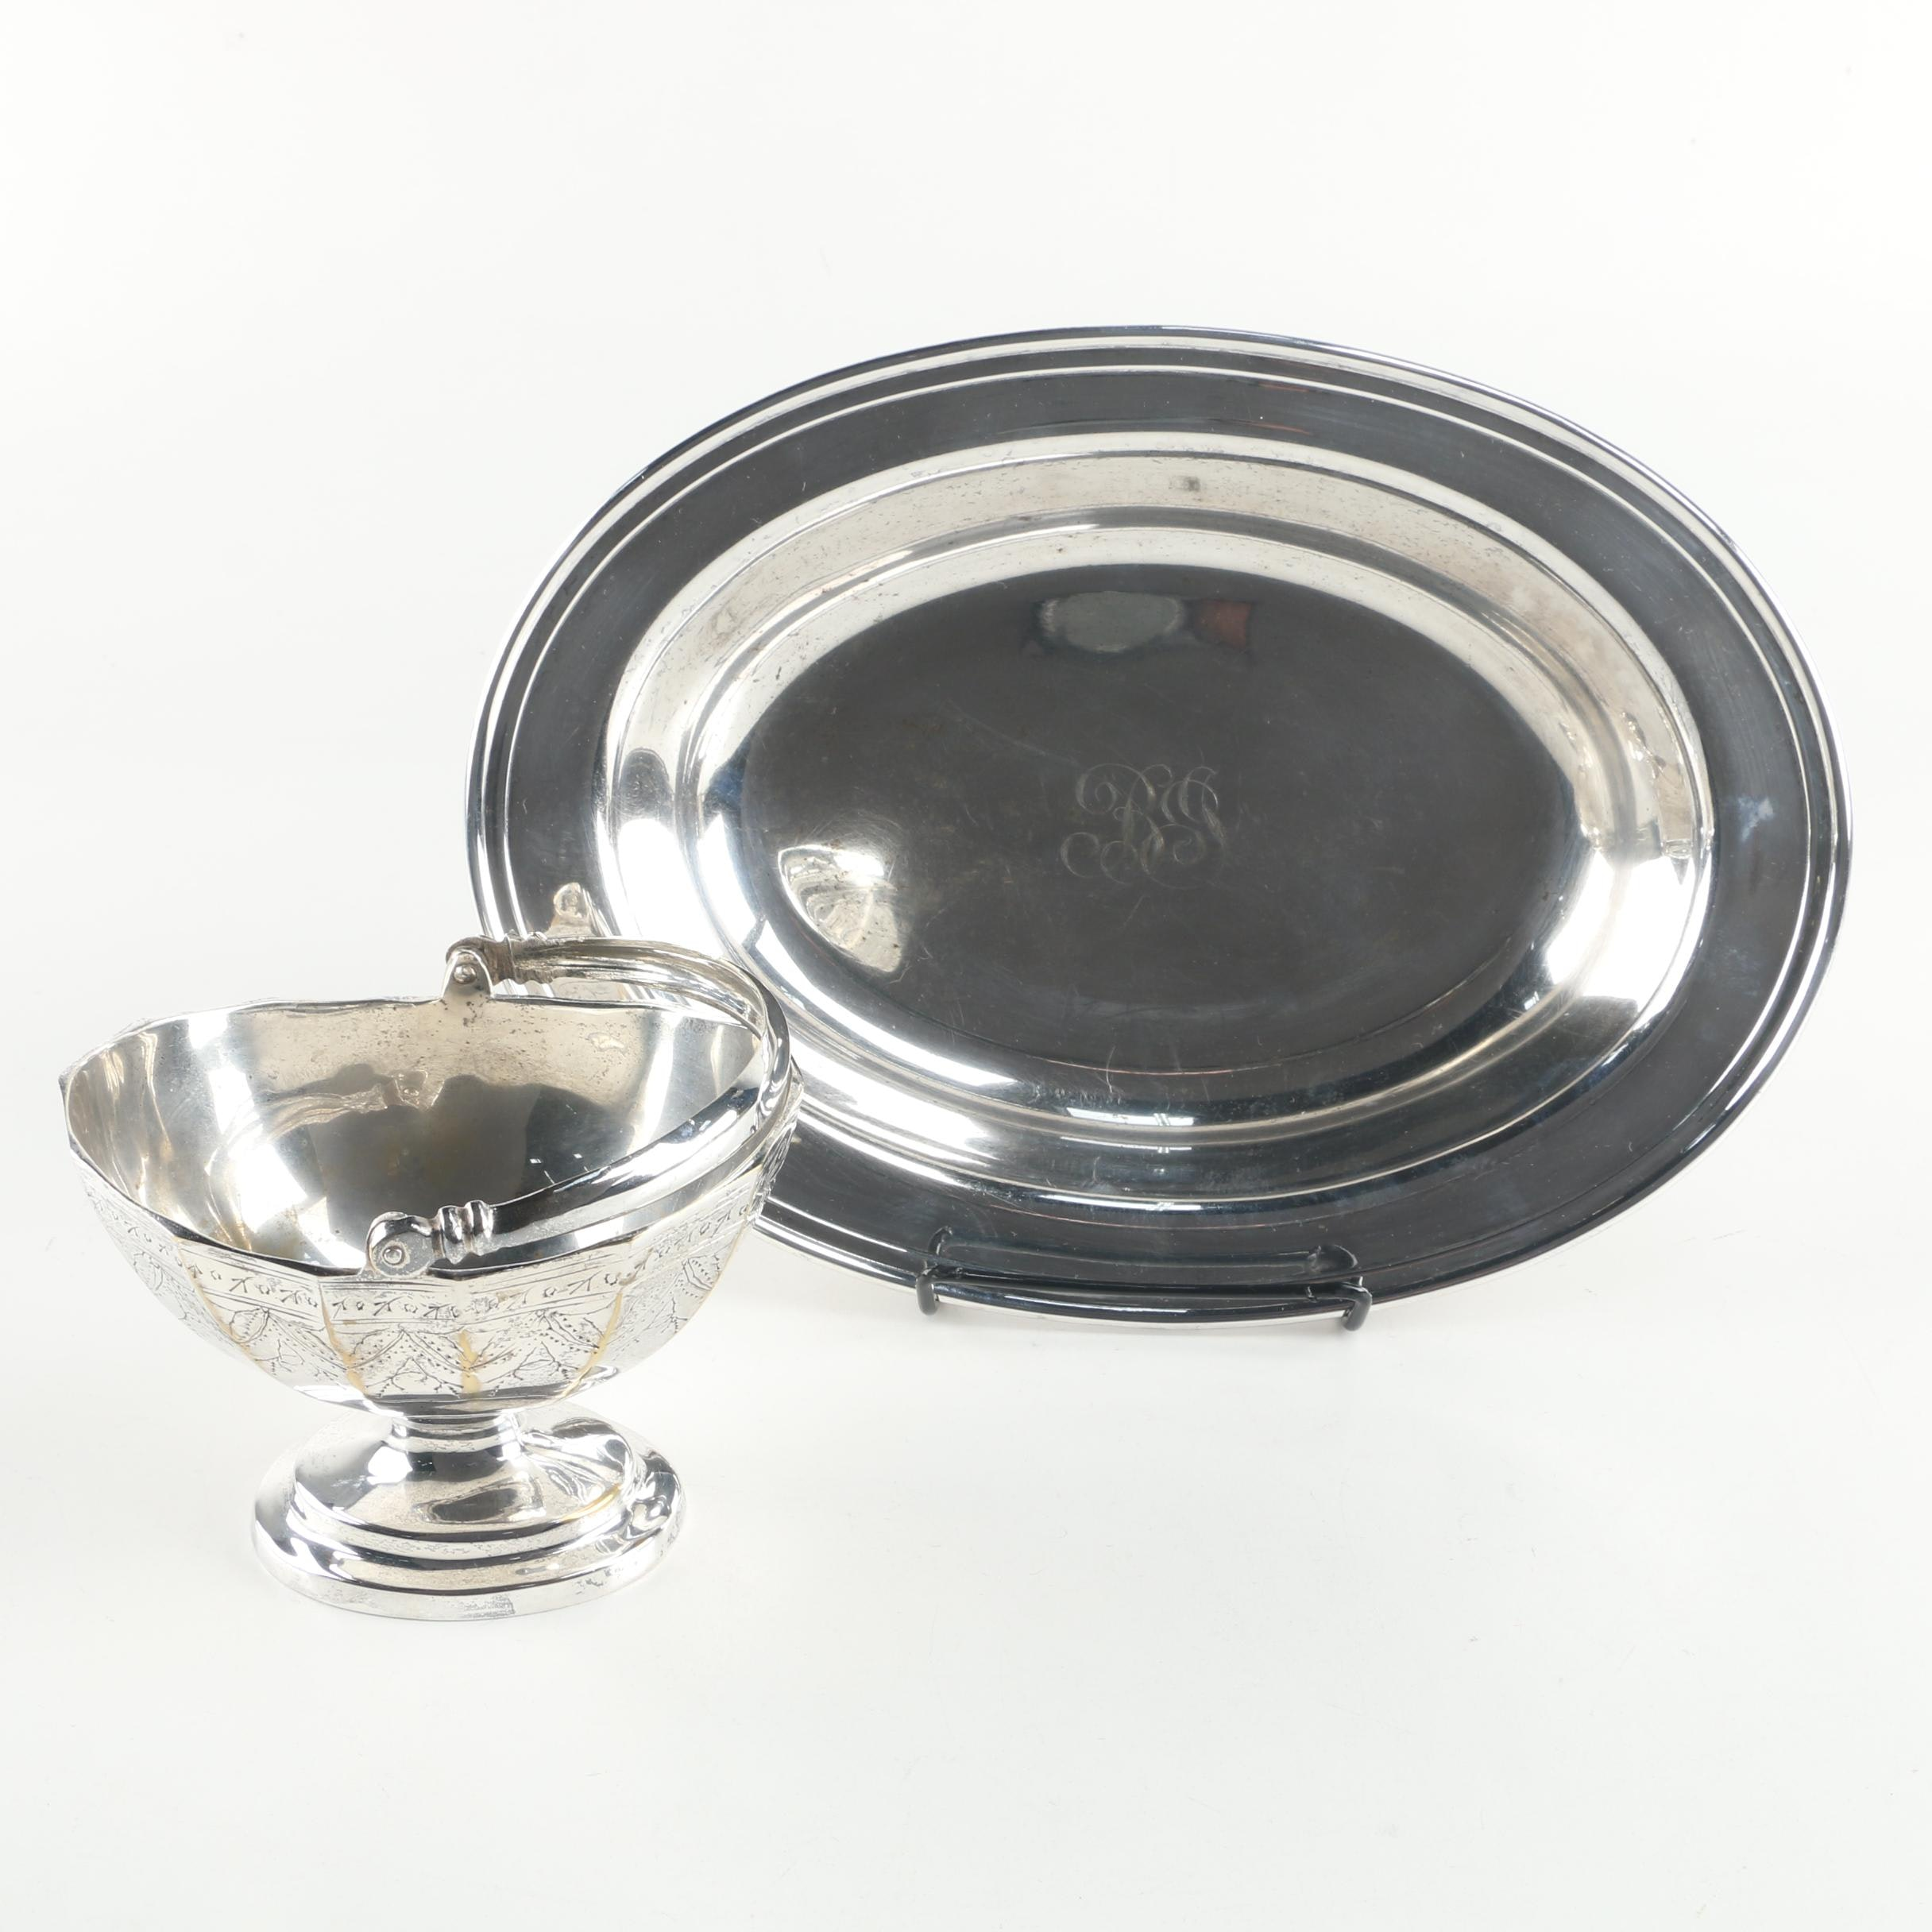 Sheffield Silver Co. Silver Plate Vegetable Dish with Silver Plate Sugar Basket